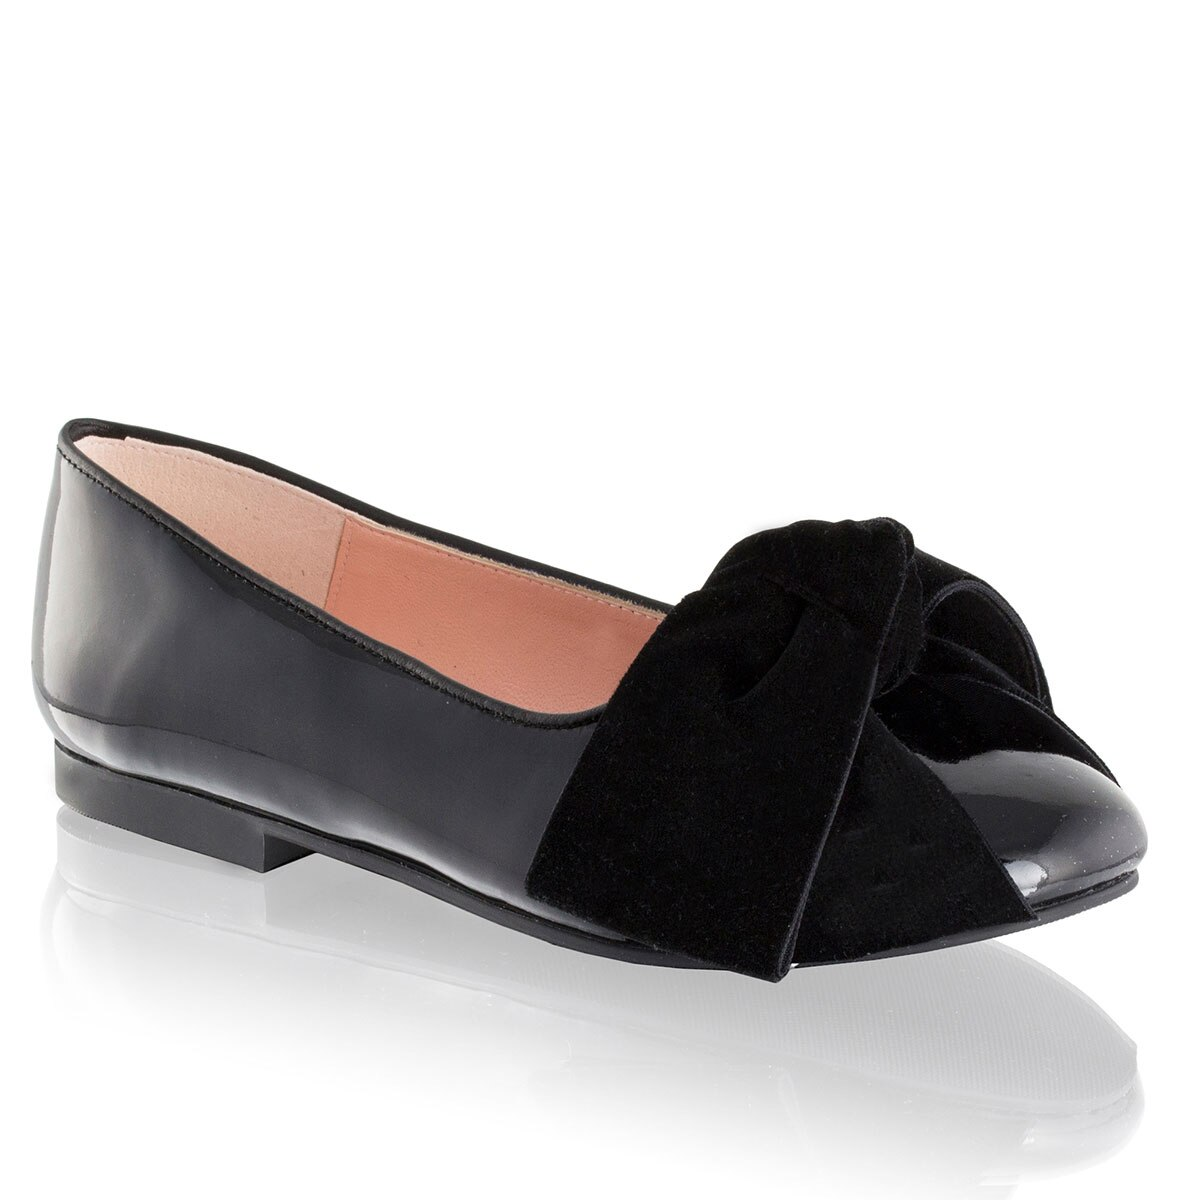 Russell and Bromley DIDDLEY Bow Trim Ballerina